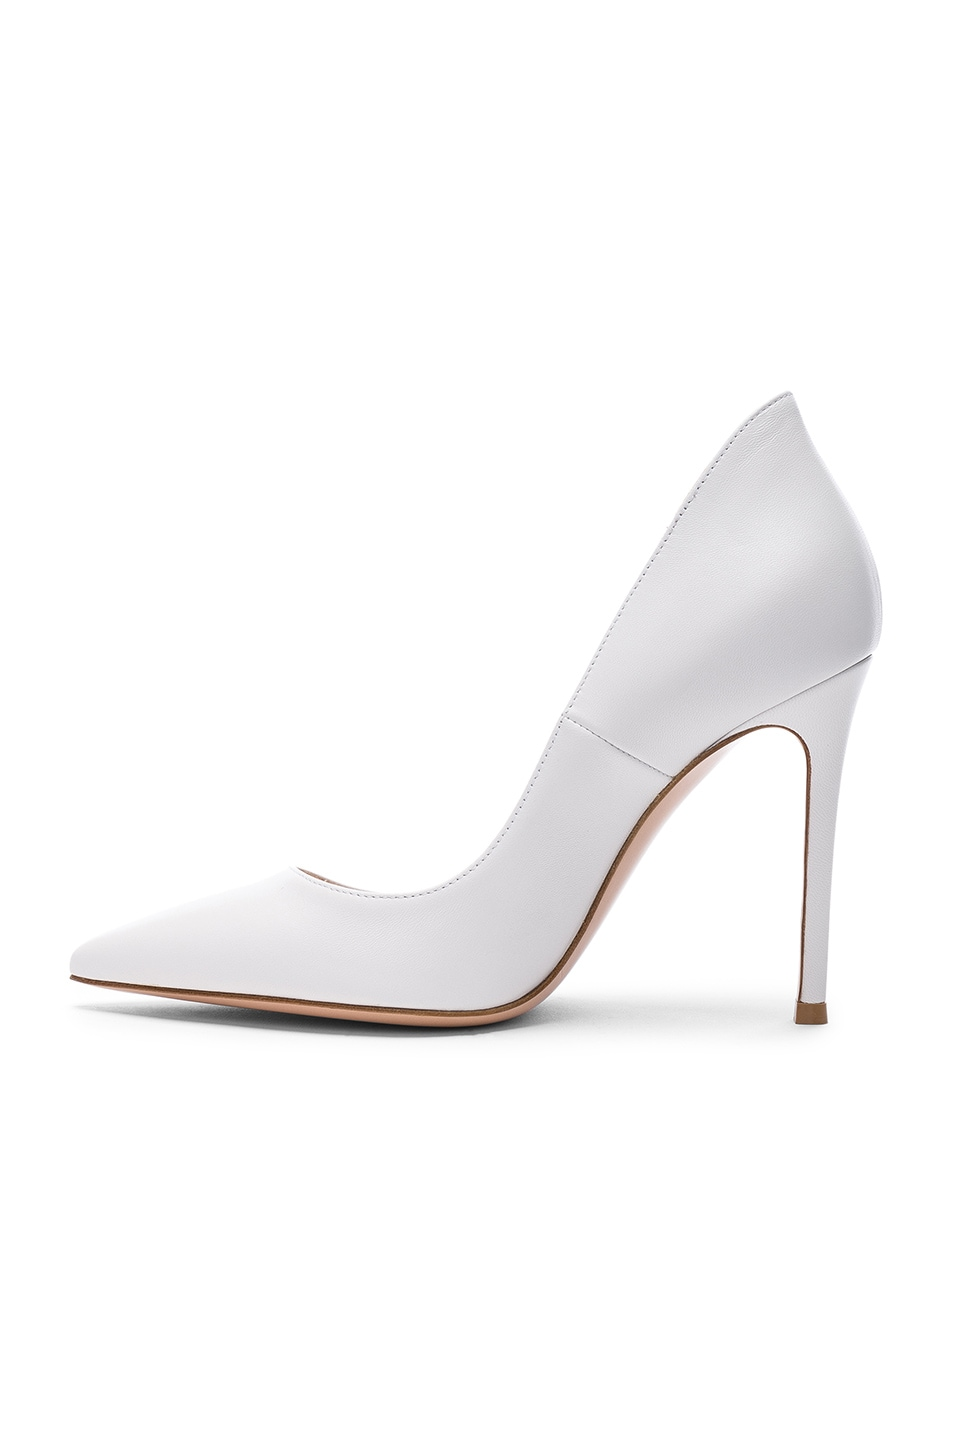 Image 5 of Gianvito Rossi Leather Ellipsis Pumps in White